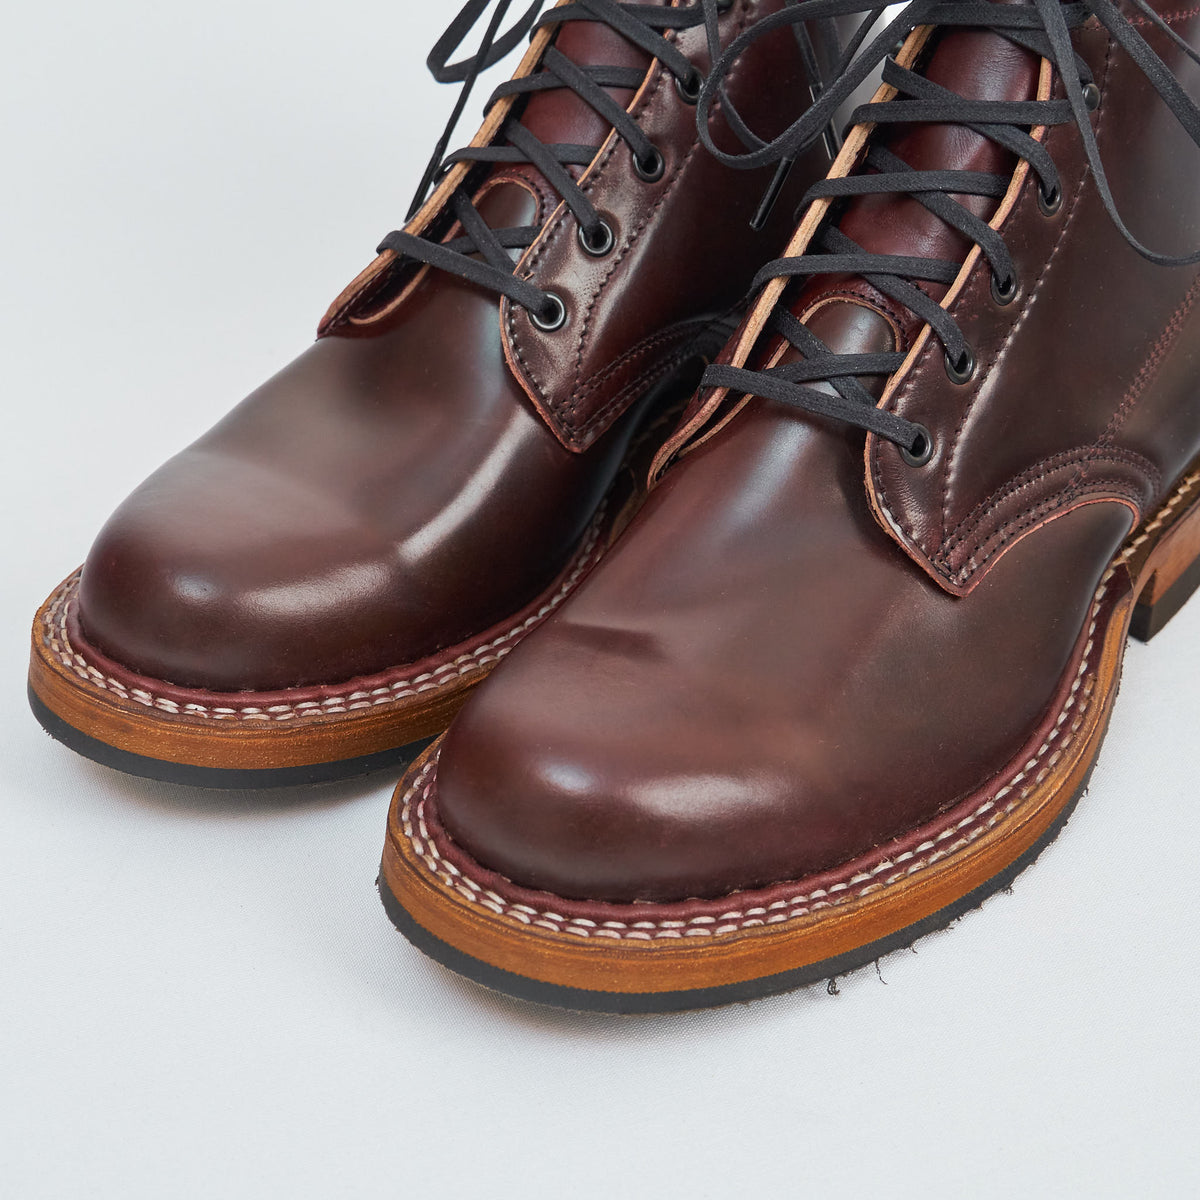 White's Boots Limited Horween Shell Cordovan Lace-up Boots